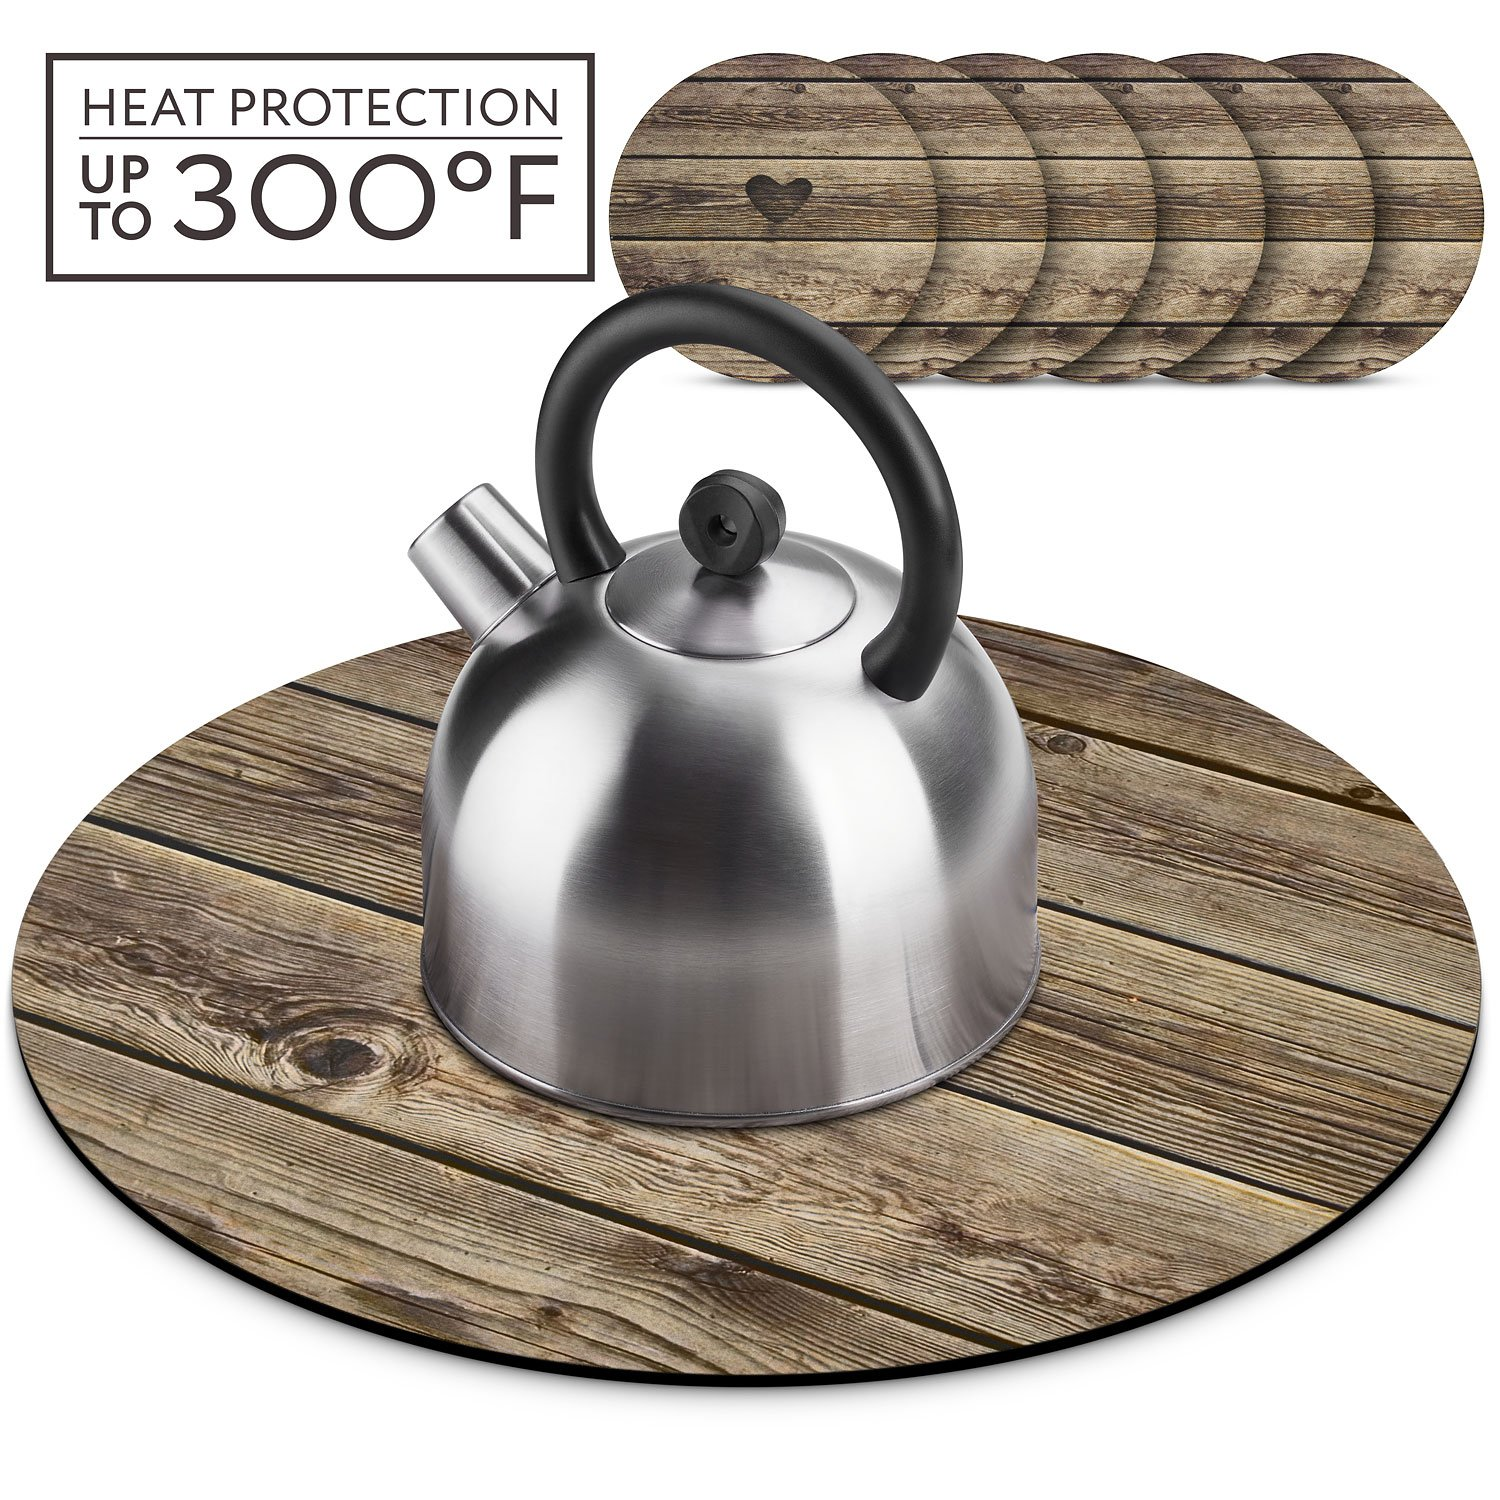 Wooden Farmhouse Teapot Trivet Set, Hot Pad for Table with 6 4 inch Cup Coasters Set, for Hot Pots Hot Kettles Dishes and Table Decoration Placemat. Wooden Rustic ANNA STAY